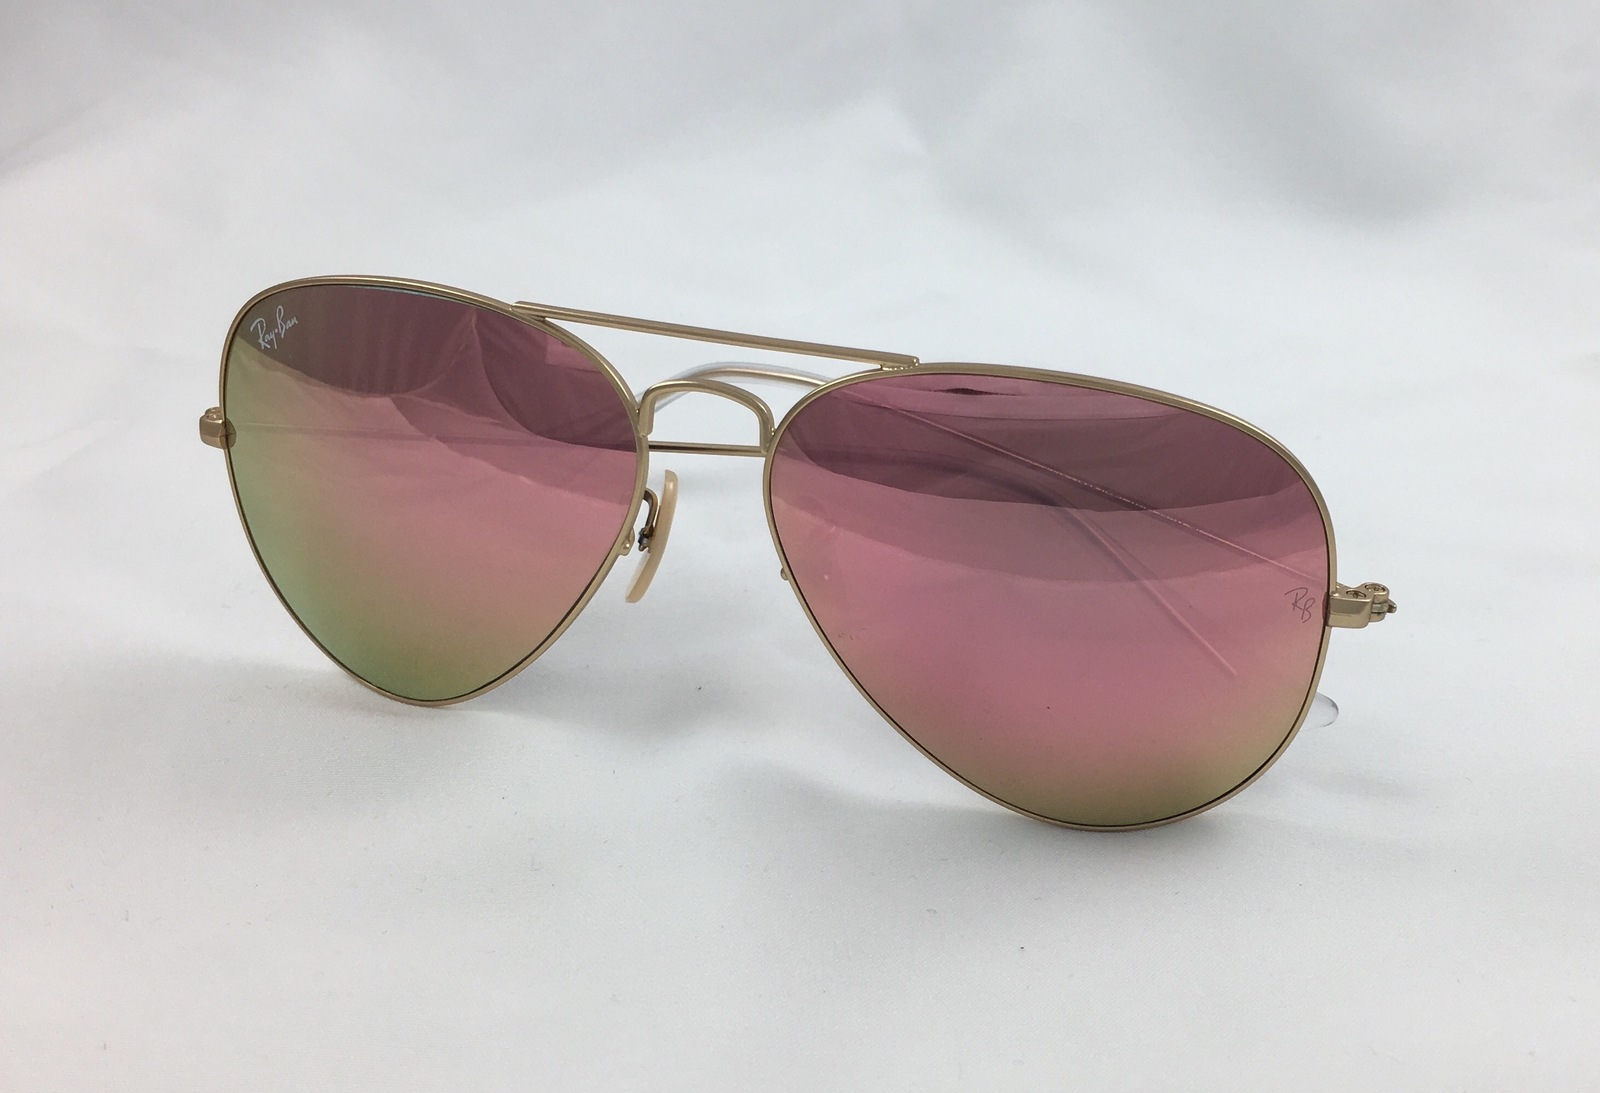 67b7d2abf5 112 z2 0. 112 z2 0. Previous. Ray Ban Aviator RB3025 112 Z2 58mm Sunglasses  Gold With Pink Mirror Lens